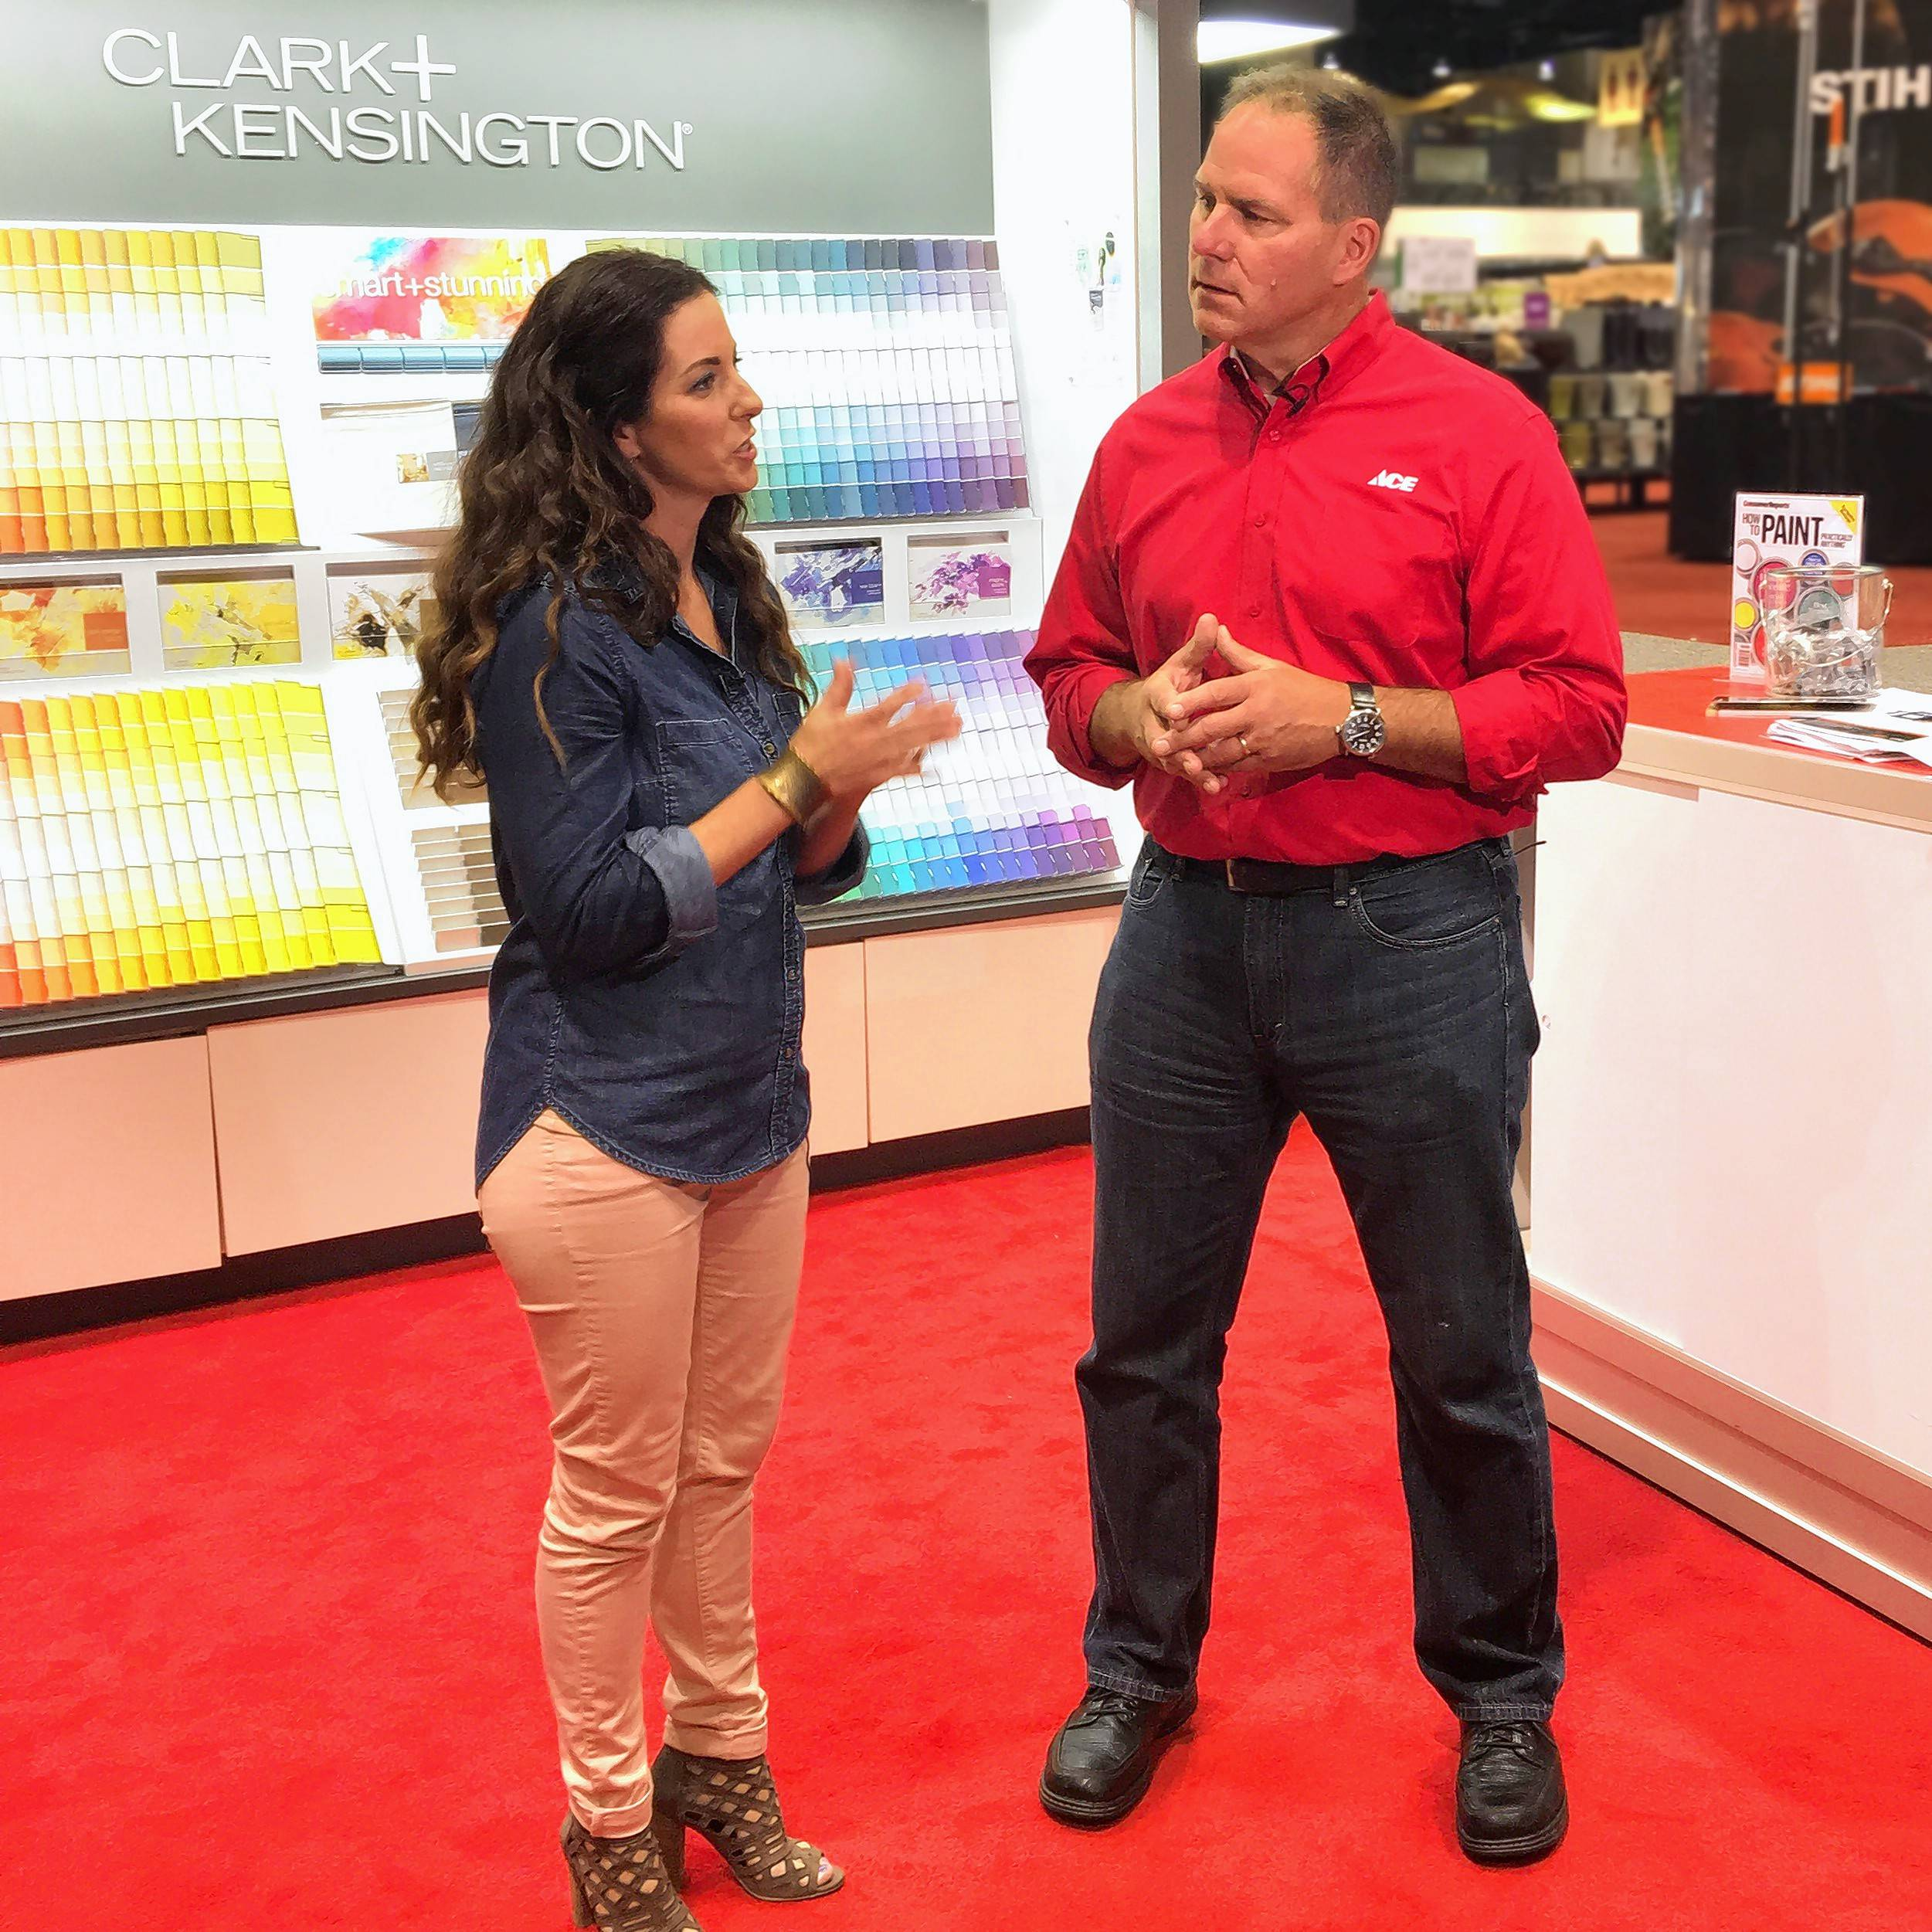 COURTESY OF ACE HARDWAREKatie Reynolds, Ace Hardware's Design Expert, at left, and Lou Manfredini, Ace Hardware's home expert talk during the Ace Retailer Convention last week at McCormick Place in Chicago.